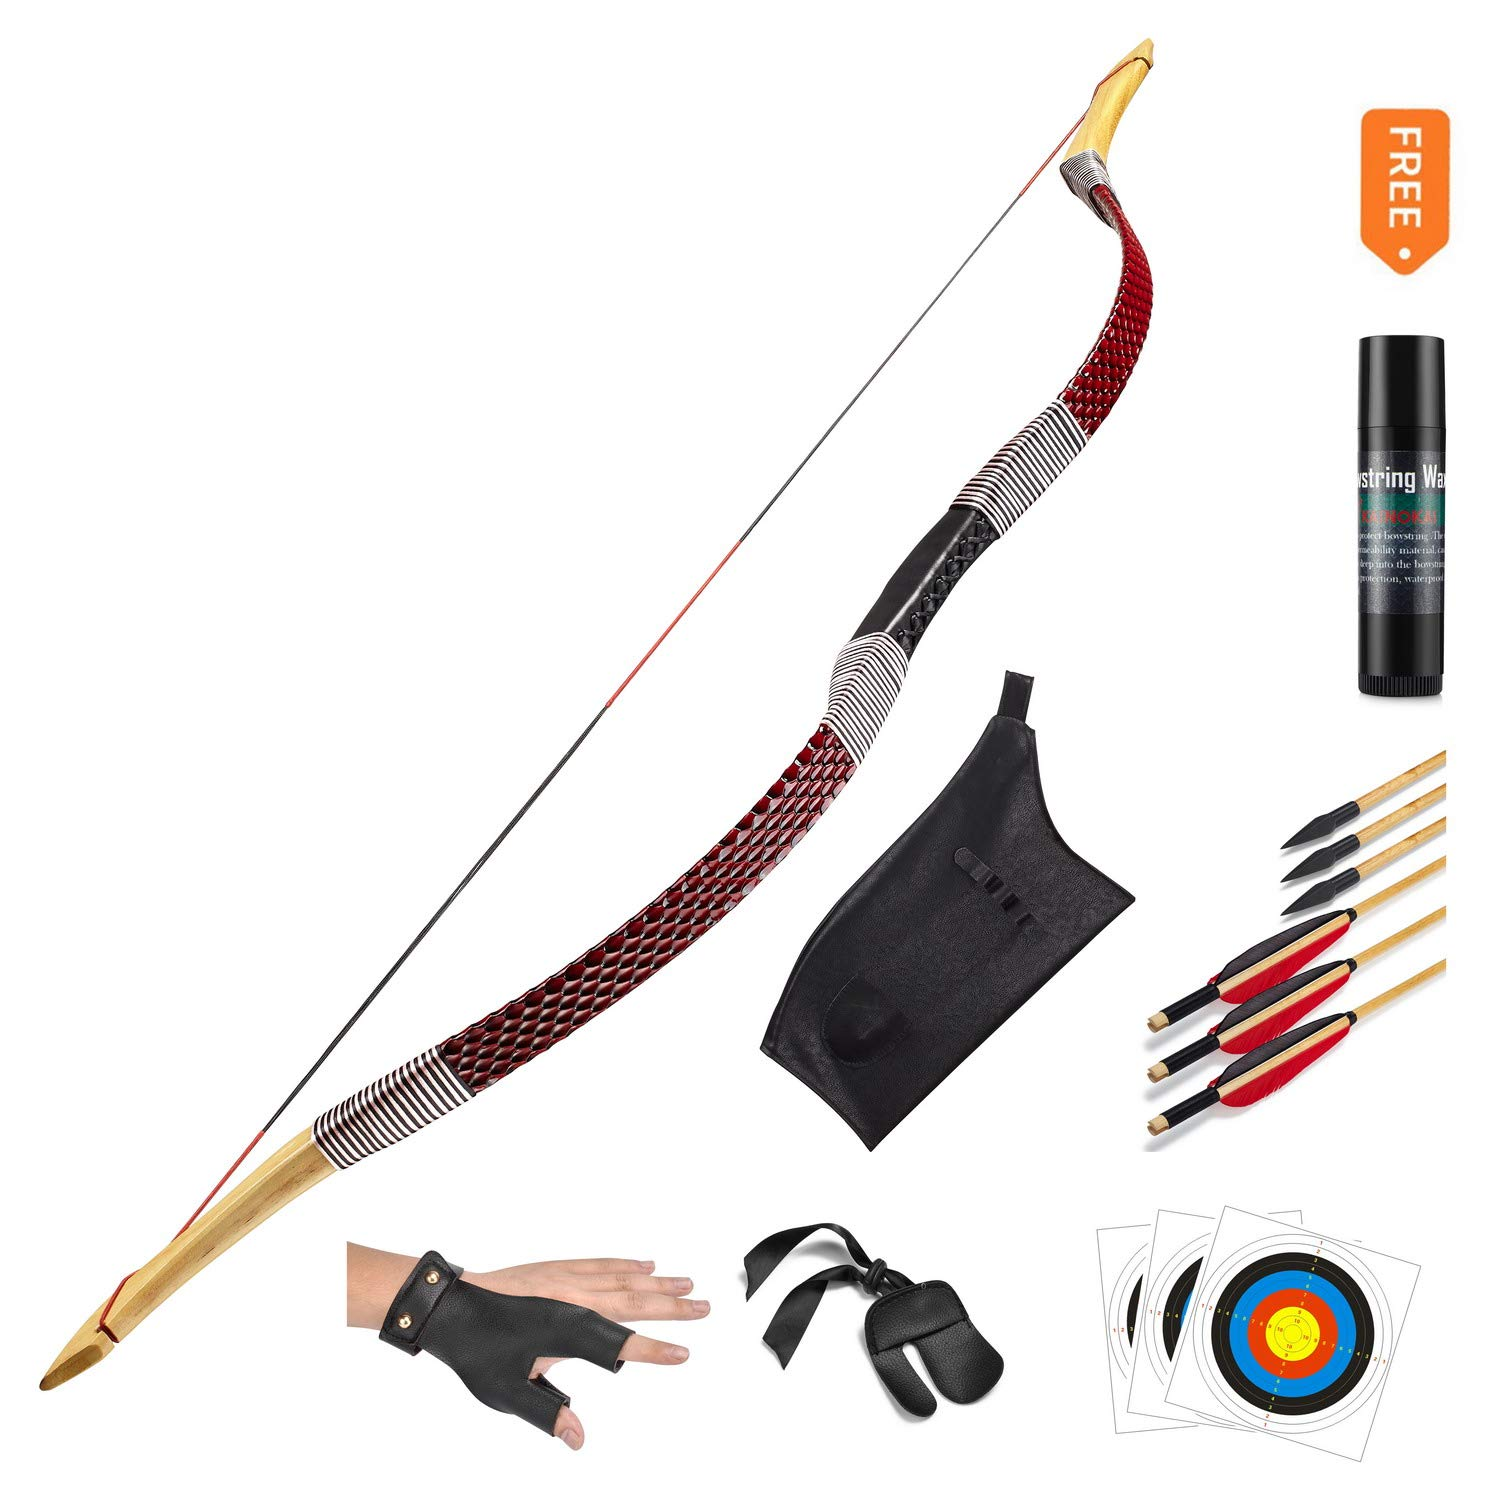 KAINOKAI Traditional Handmade Longbow Horsebow Hunting Recurve Archery Bow Recurve Bow Set (Red Dragon, 25.0 Pounds)